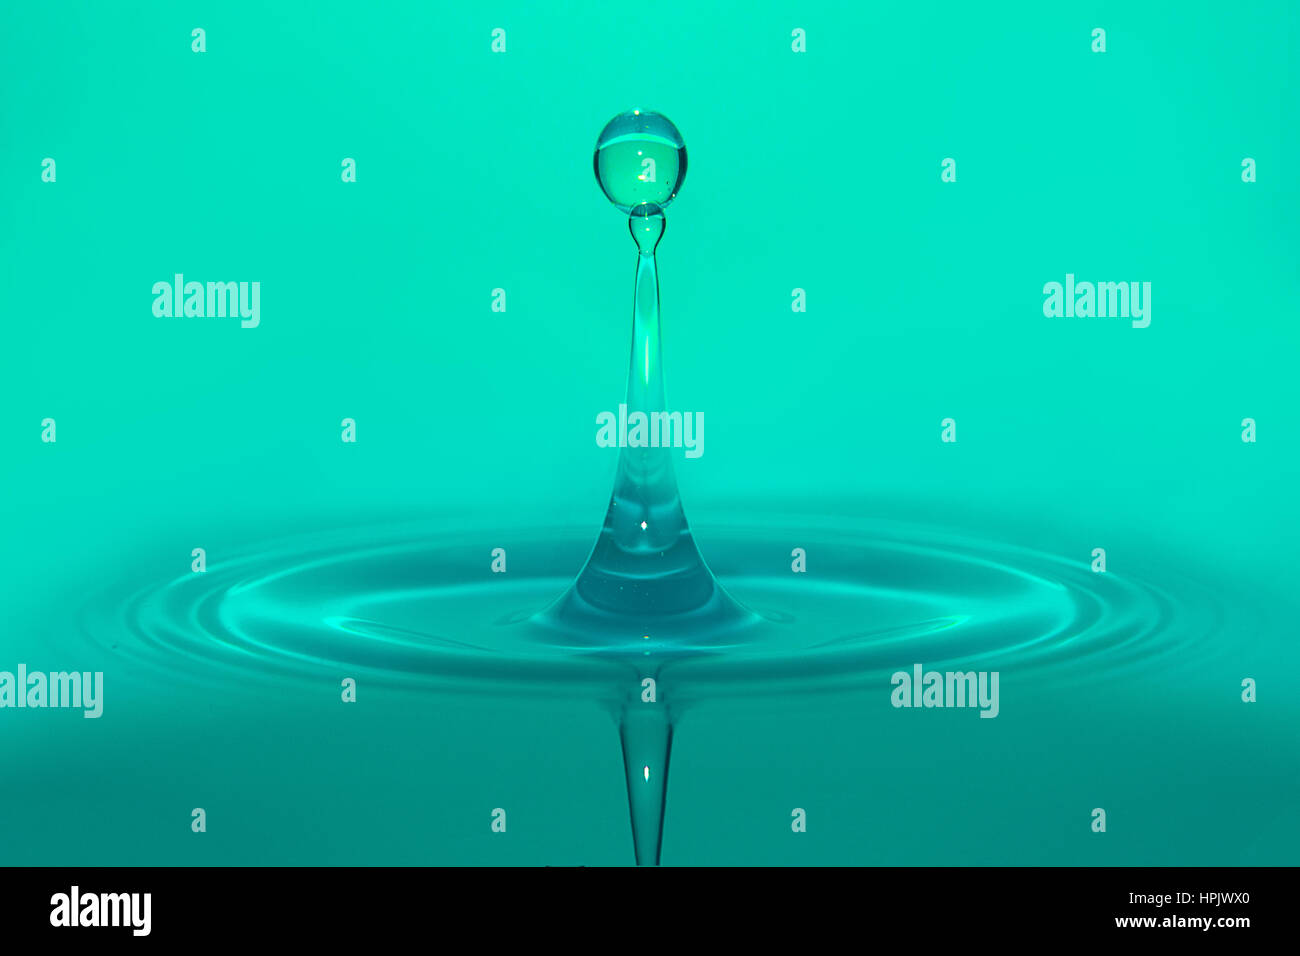 Water droplets splashing cyan background, great for spa use - Stock Image